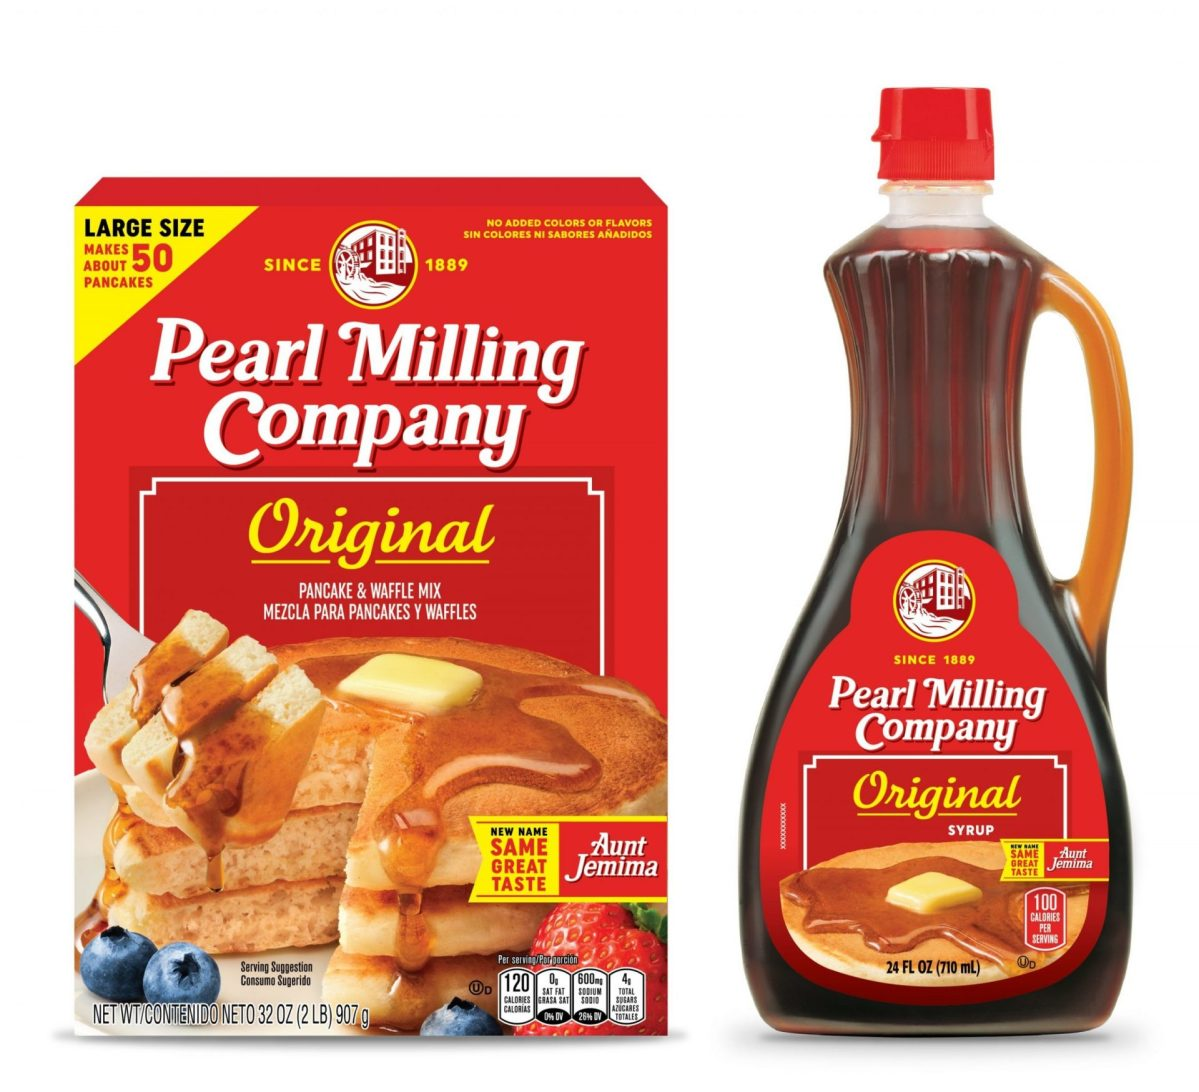 https://i2.wp.com/marcomweekly.com/wp-content/uploads/2021/02/PepsiCo_Pearl_Milling_Company_Packaging-scaled-e1613489322960.jpg?fit=1200%2C1092&ssl=1